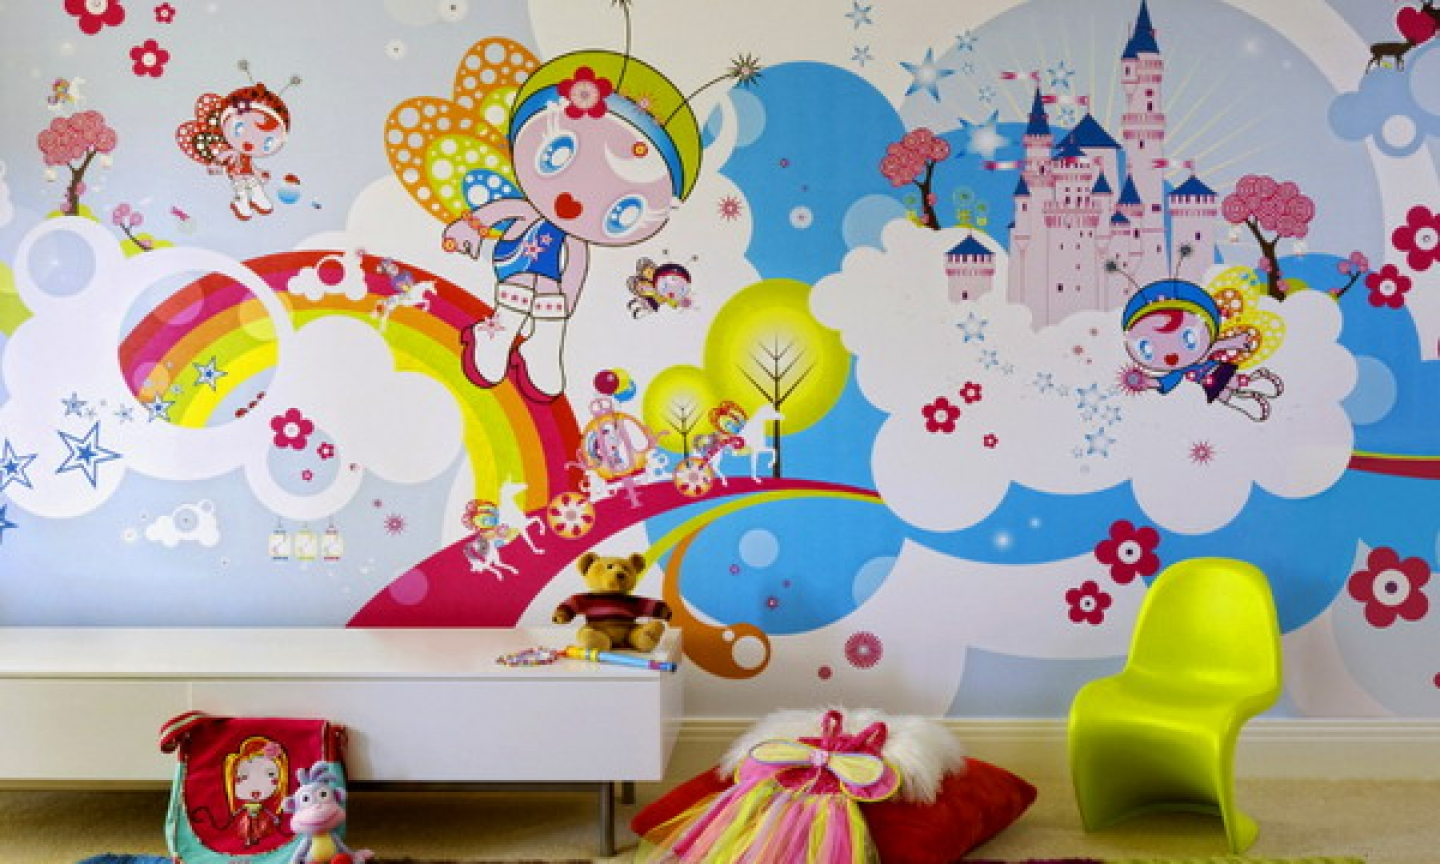 Wallpapers For Kids Room